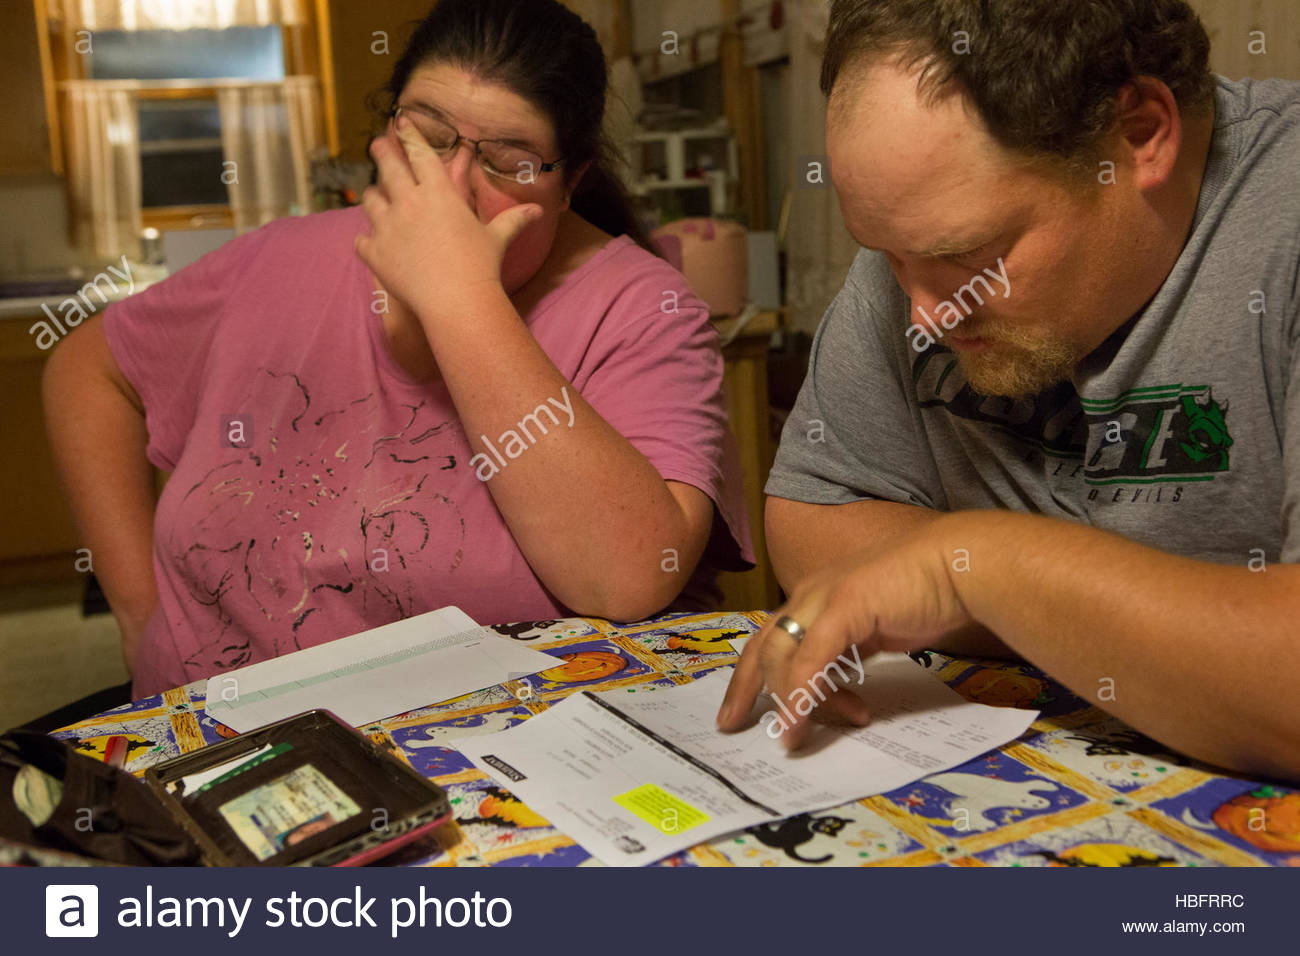 A financially struggling couple looks through overdue bills. - Stock Image